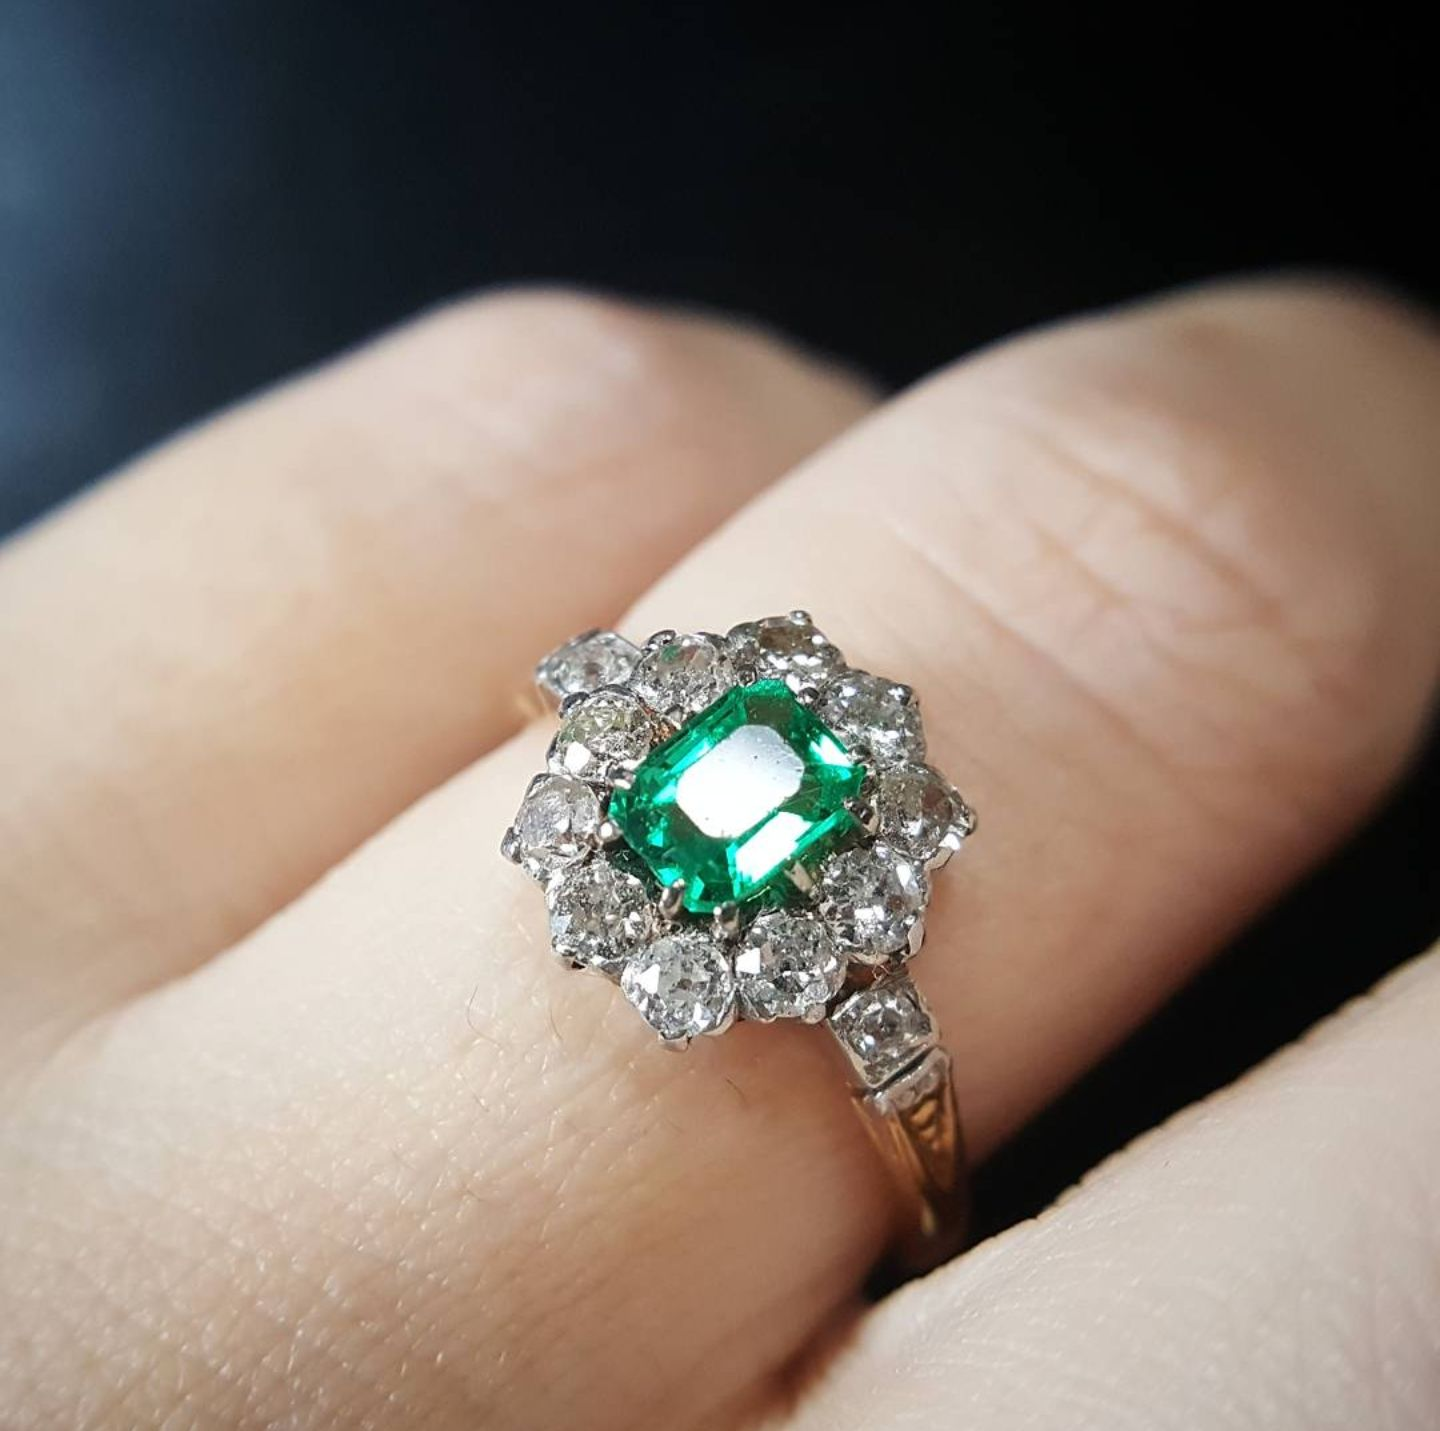 Vintage Emerald Engagement Ring from The Idol's Eye